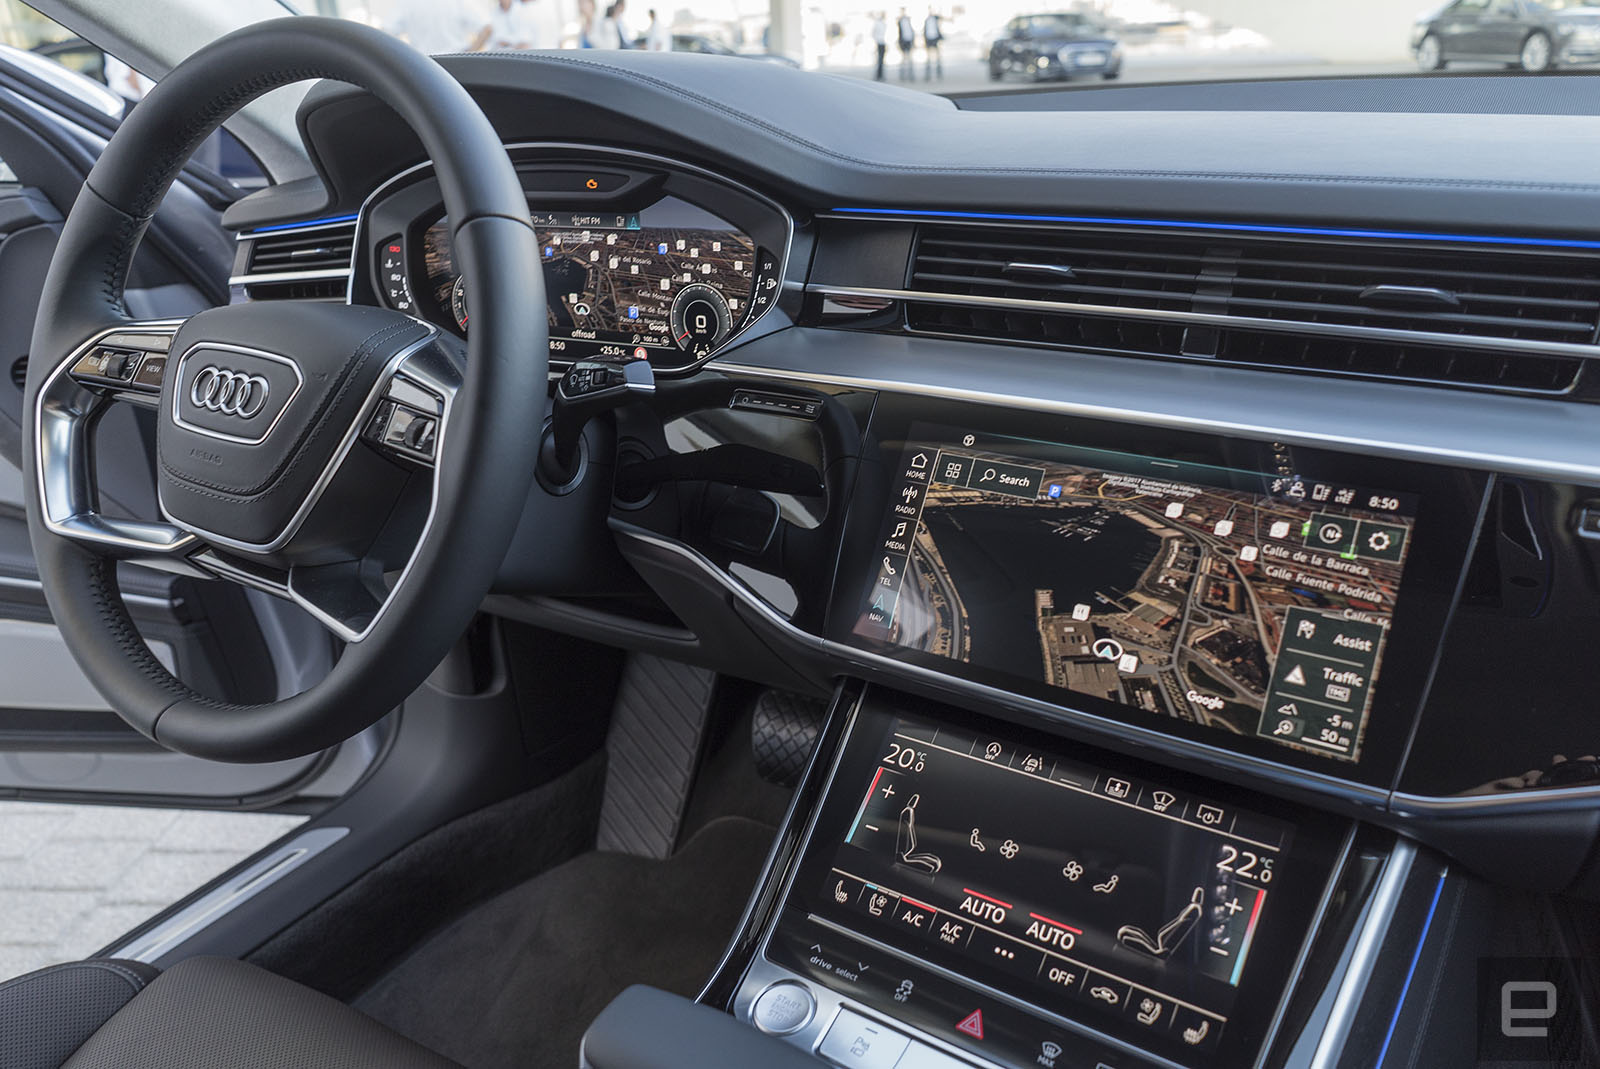 Audi S Flagship A8 Has An Overwhelming Amount Of Tech